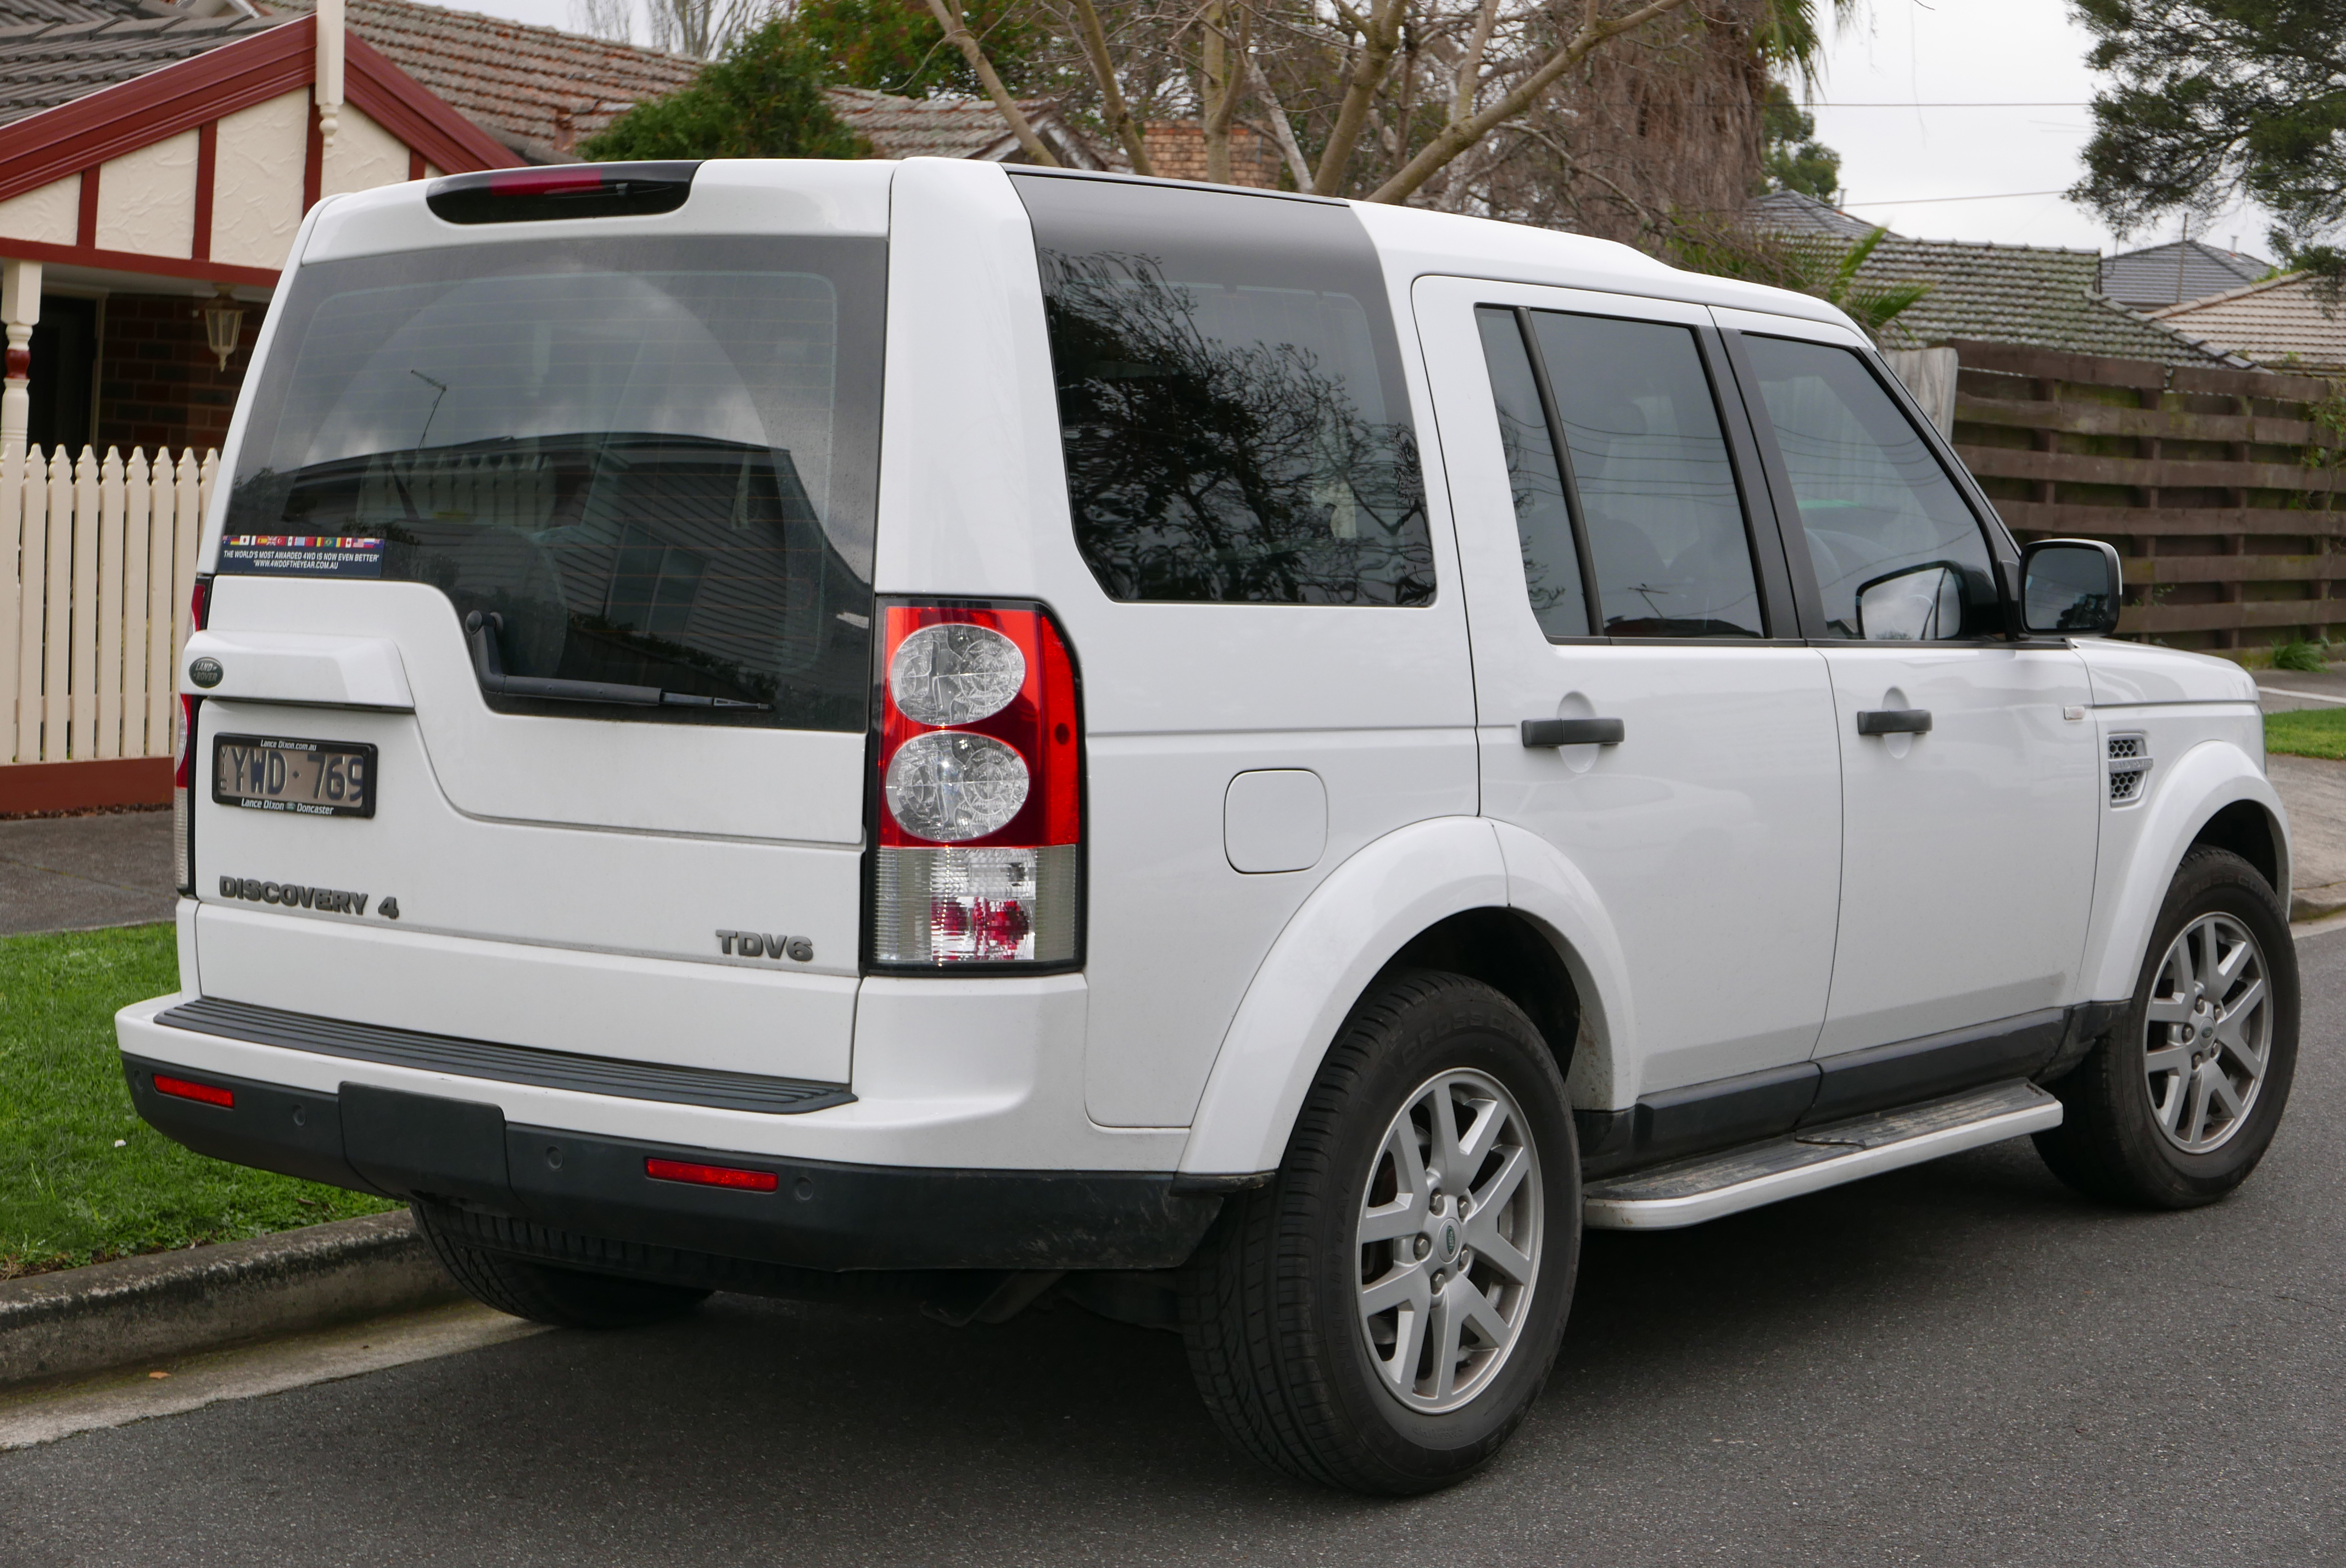 file 2012 land rover discovery 4 l319 my12 tdv6 wagon. Black Bedroom Furniture Sets. Home Design Ideas